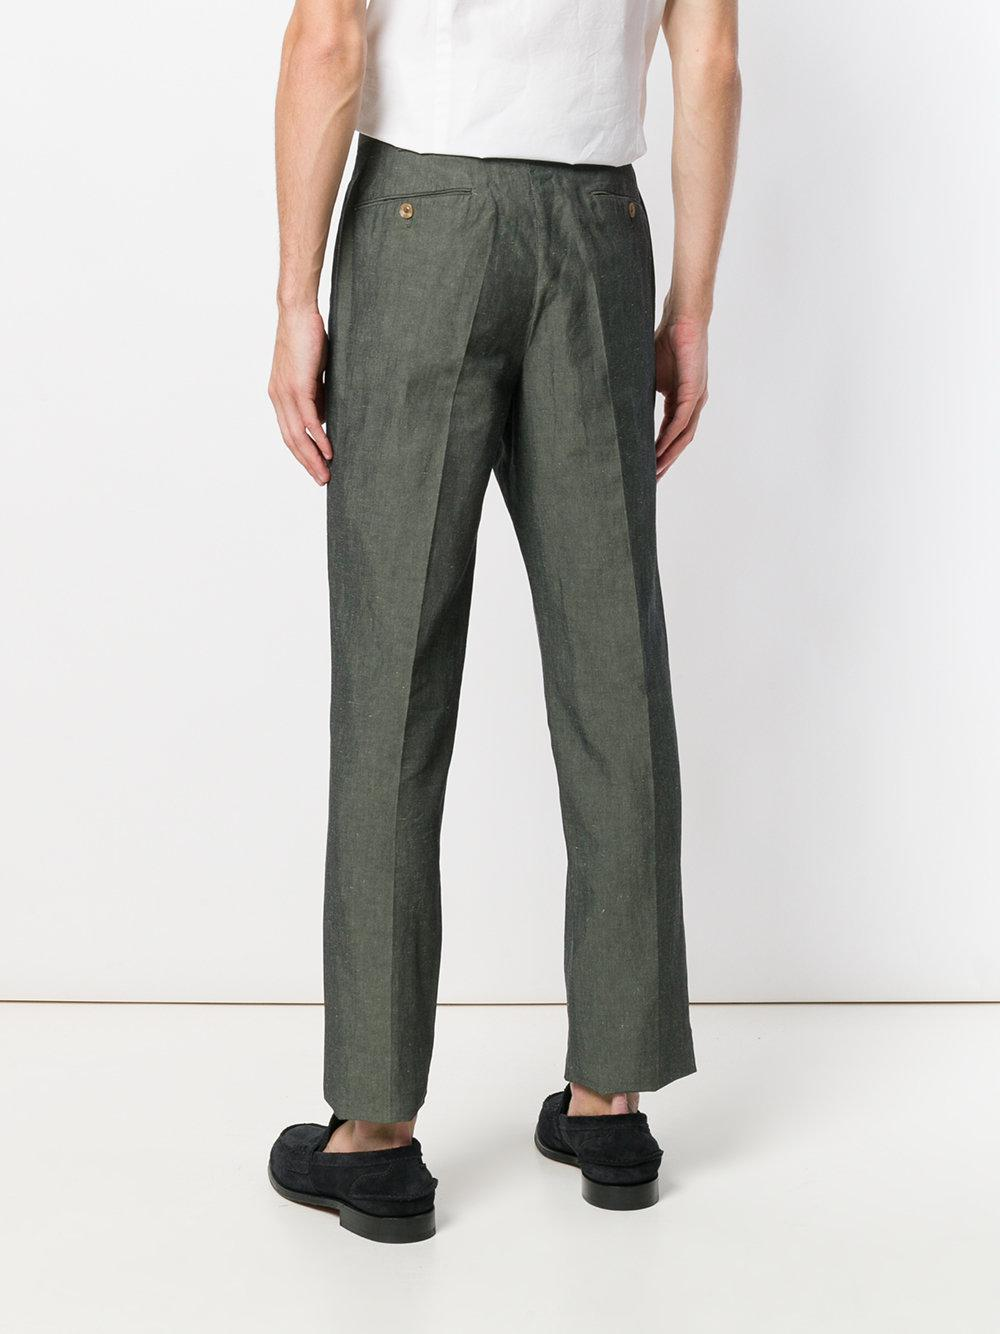 cropped chinos - Green PT01 lIBZyTpoW